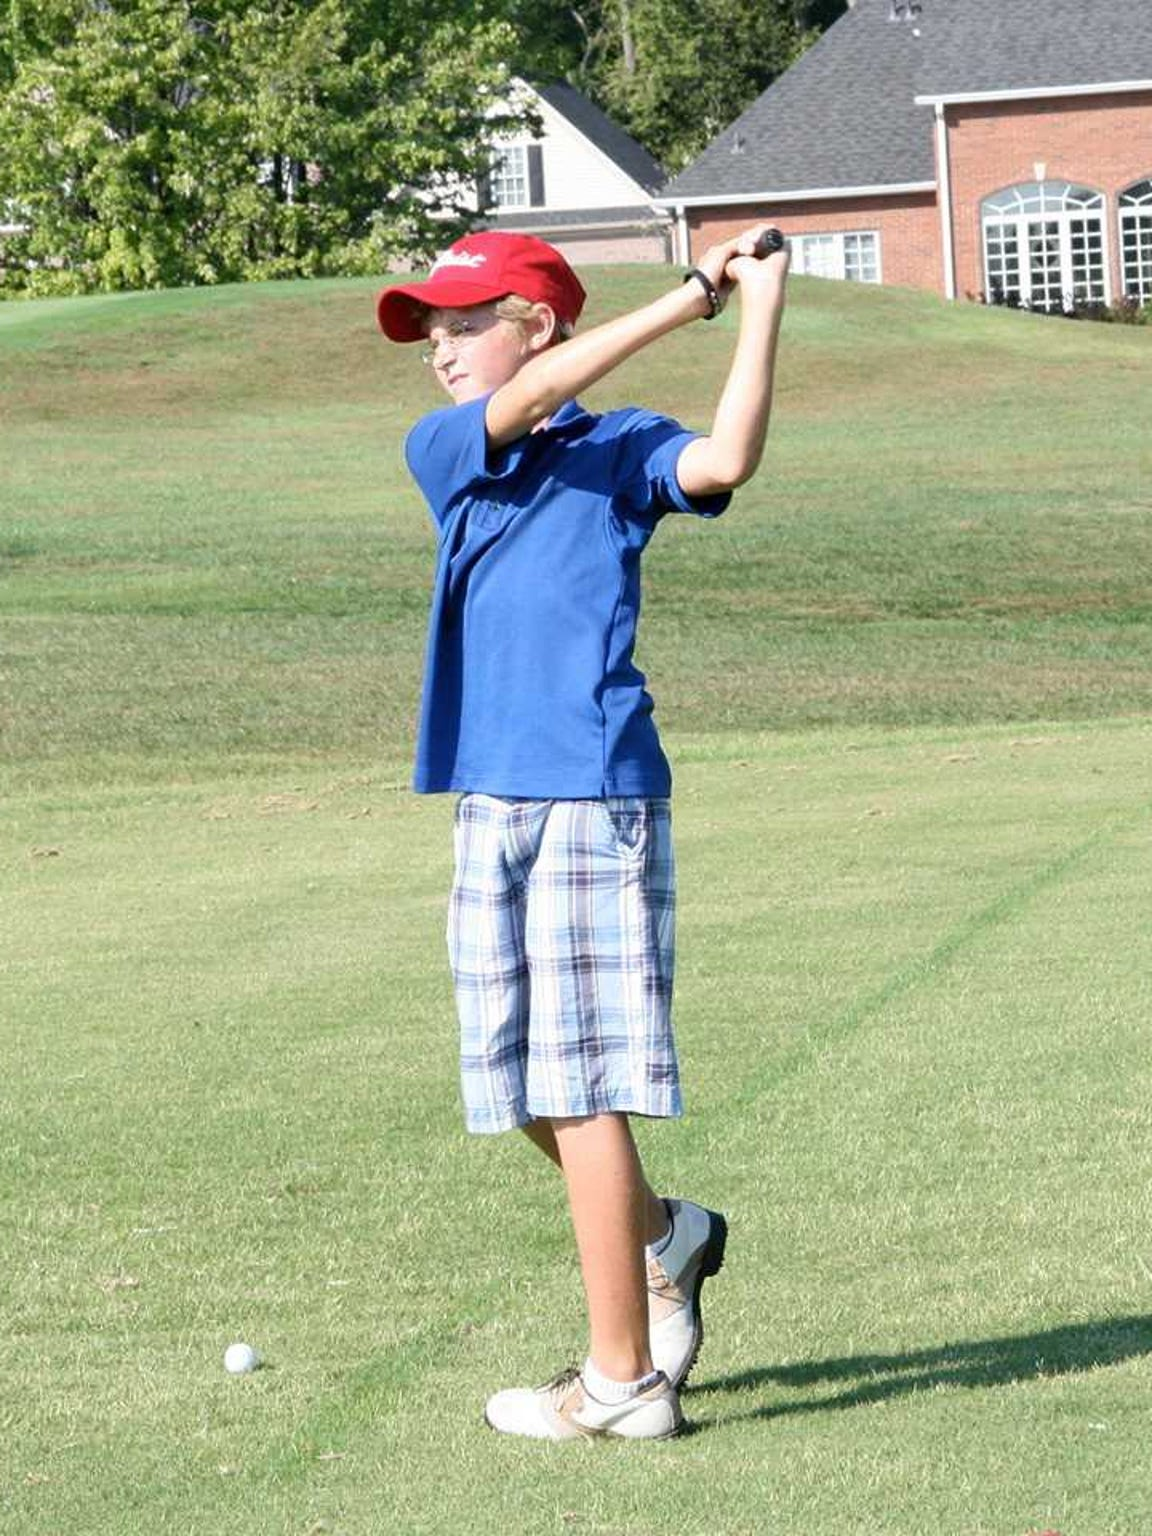 Dylan Meyer takes a practice swing during his younger days. Now a senior at Illinois, he is the sixth-ranked amateur in the world.